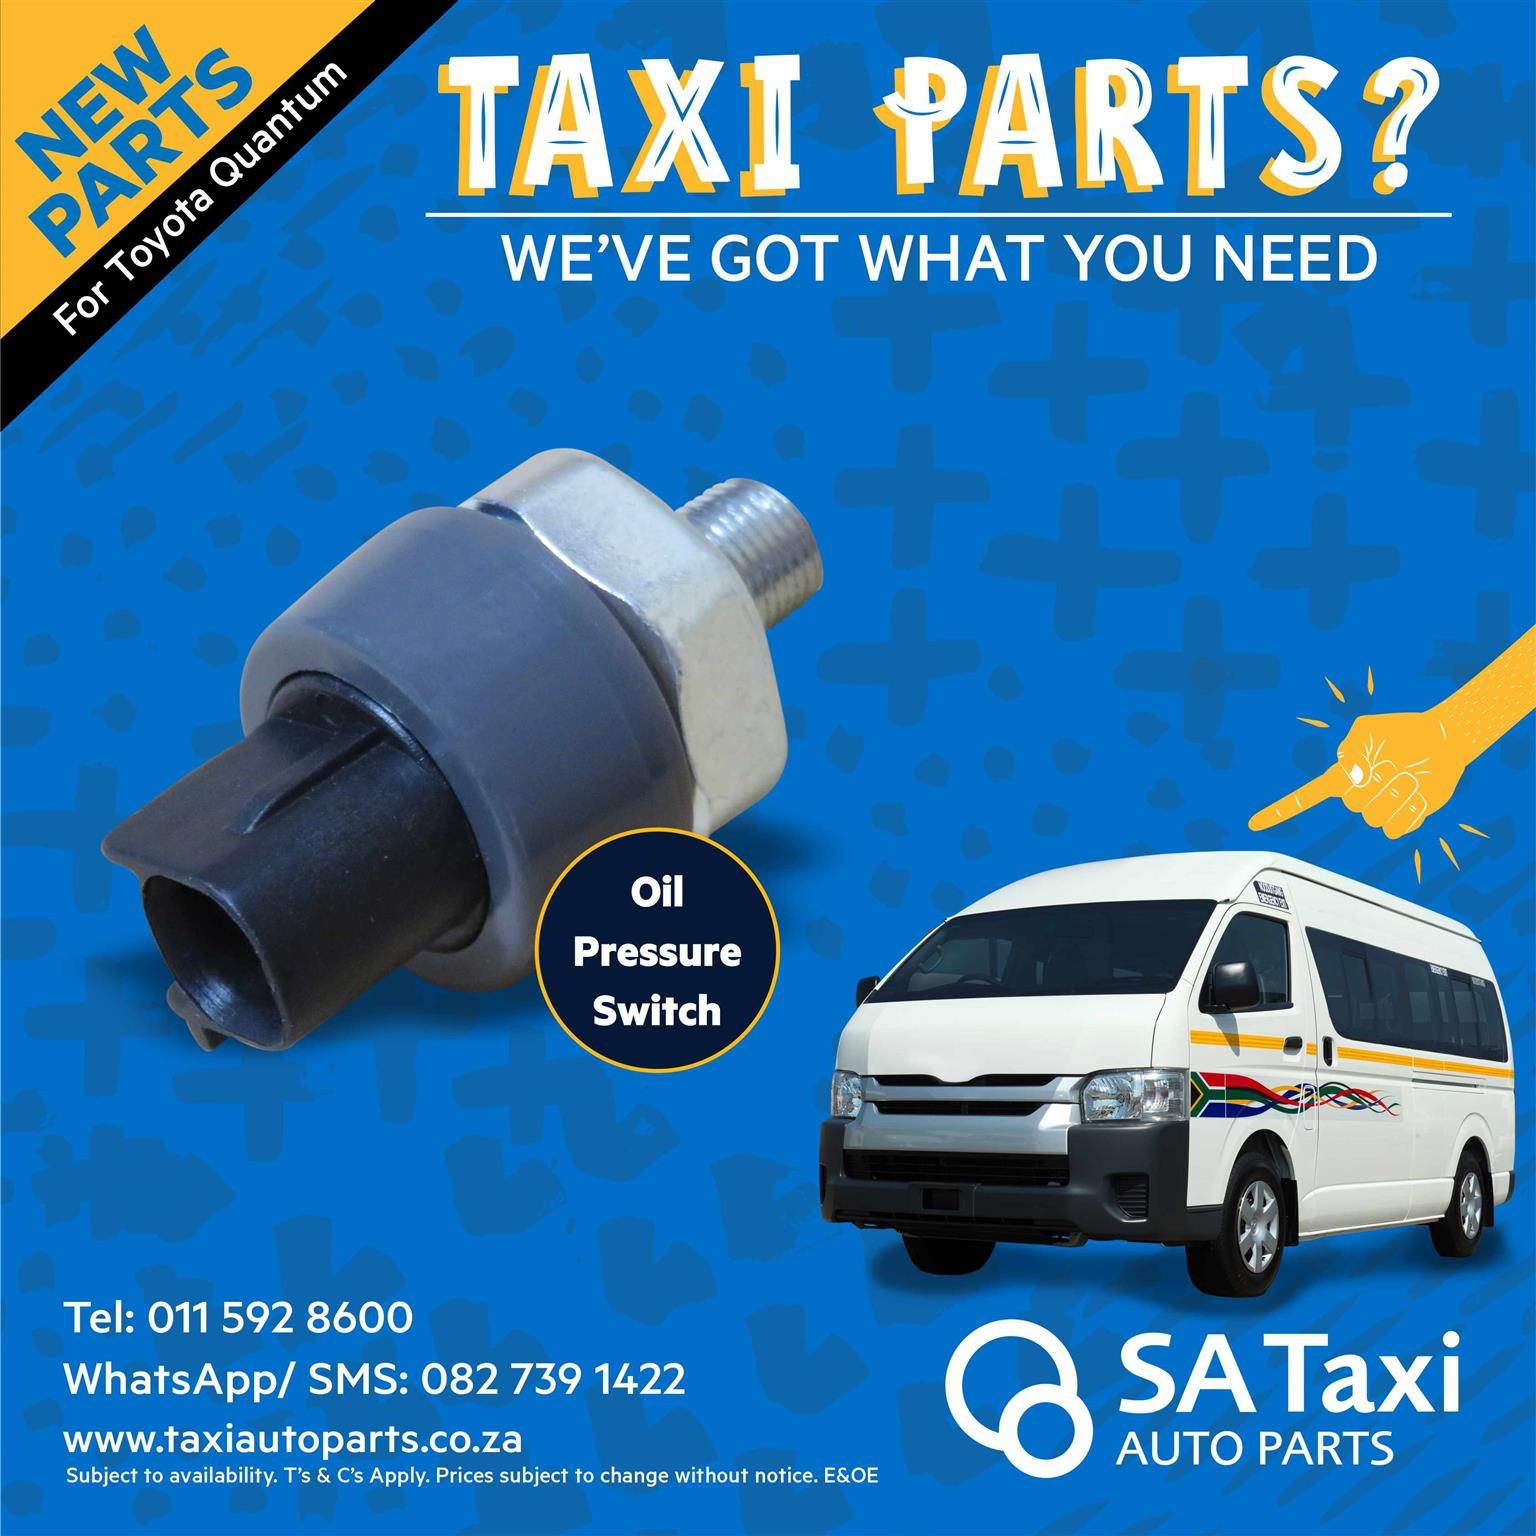 NEW Oil Pressure Switch suitable for Toyota Quantum - SA Taxi Auto Parts quality spares